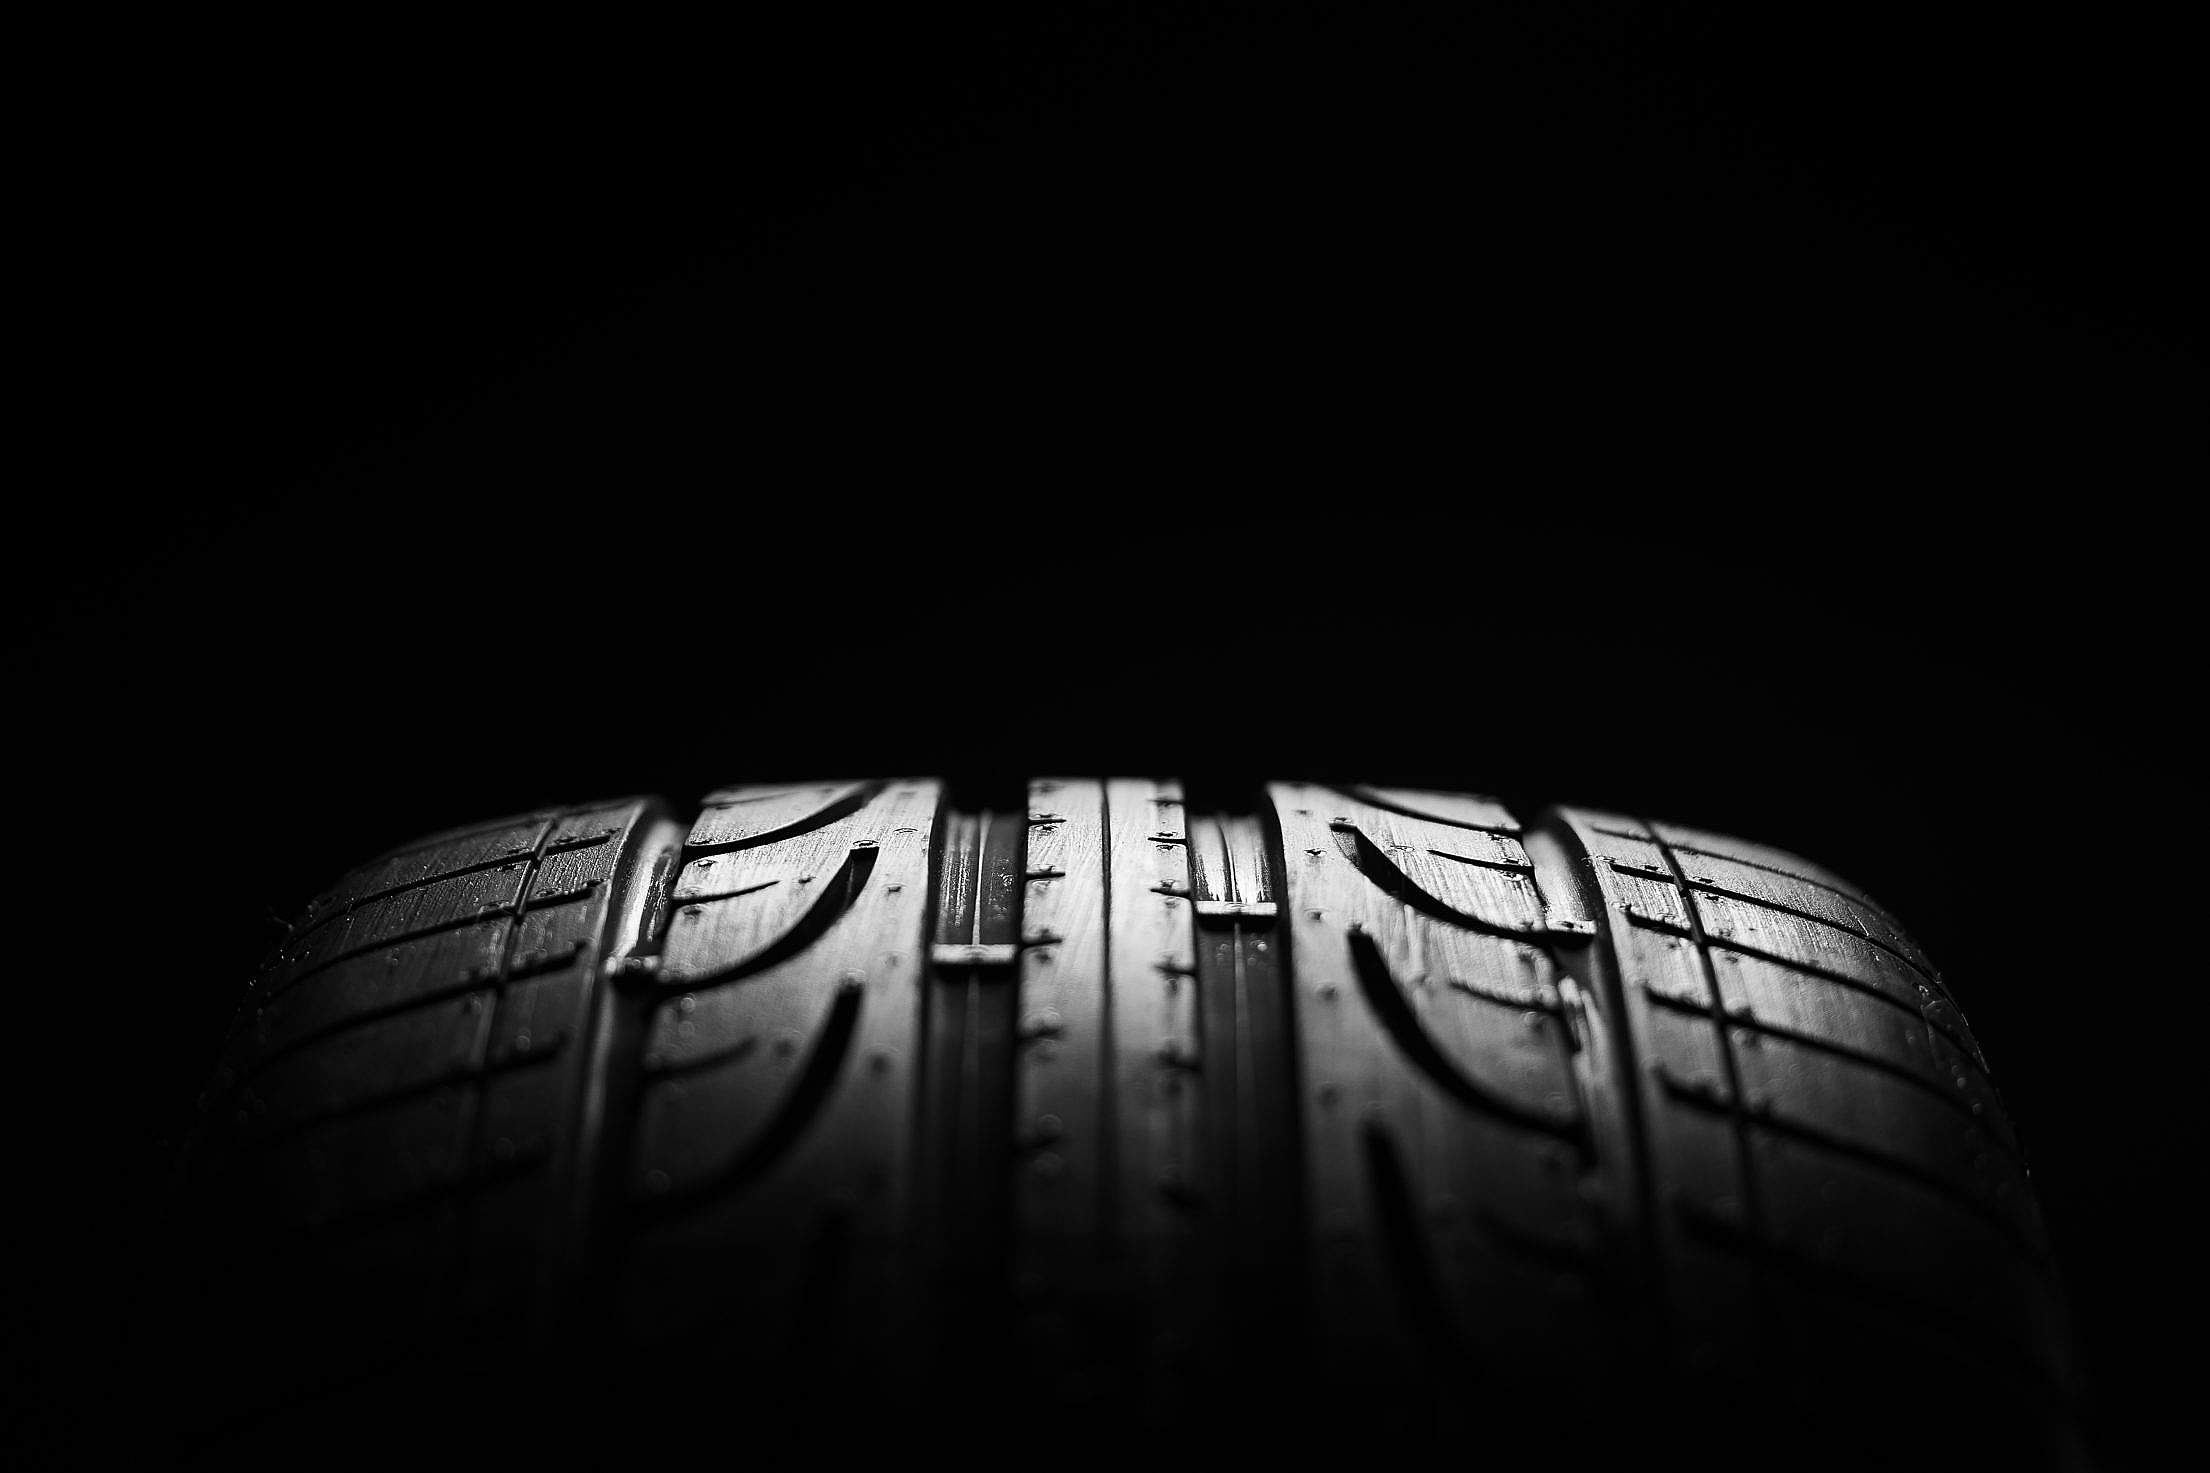 High-performance Sport Summer Car Tire Close-up Free Stock Photo